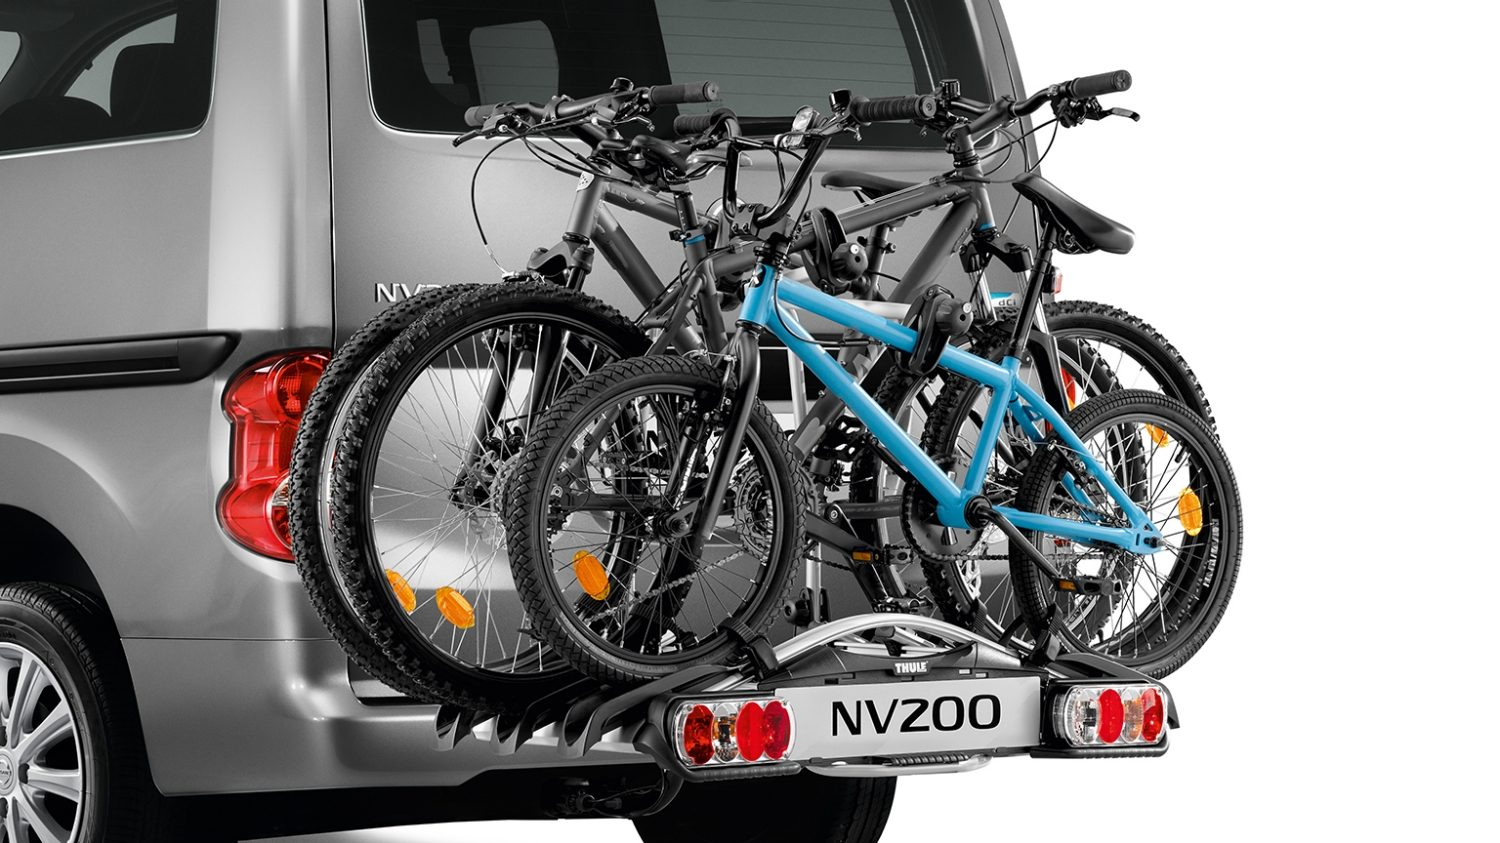 Nissan NV200 - Transportation - Bike carrier Towbar mounted 3 bikes